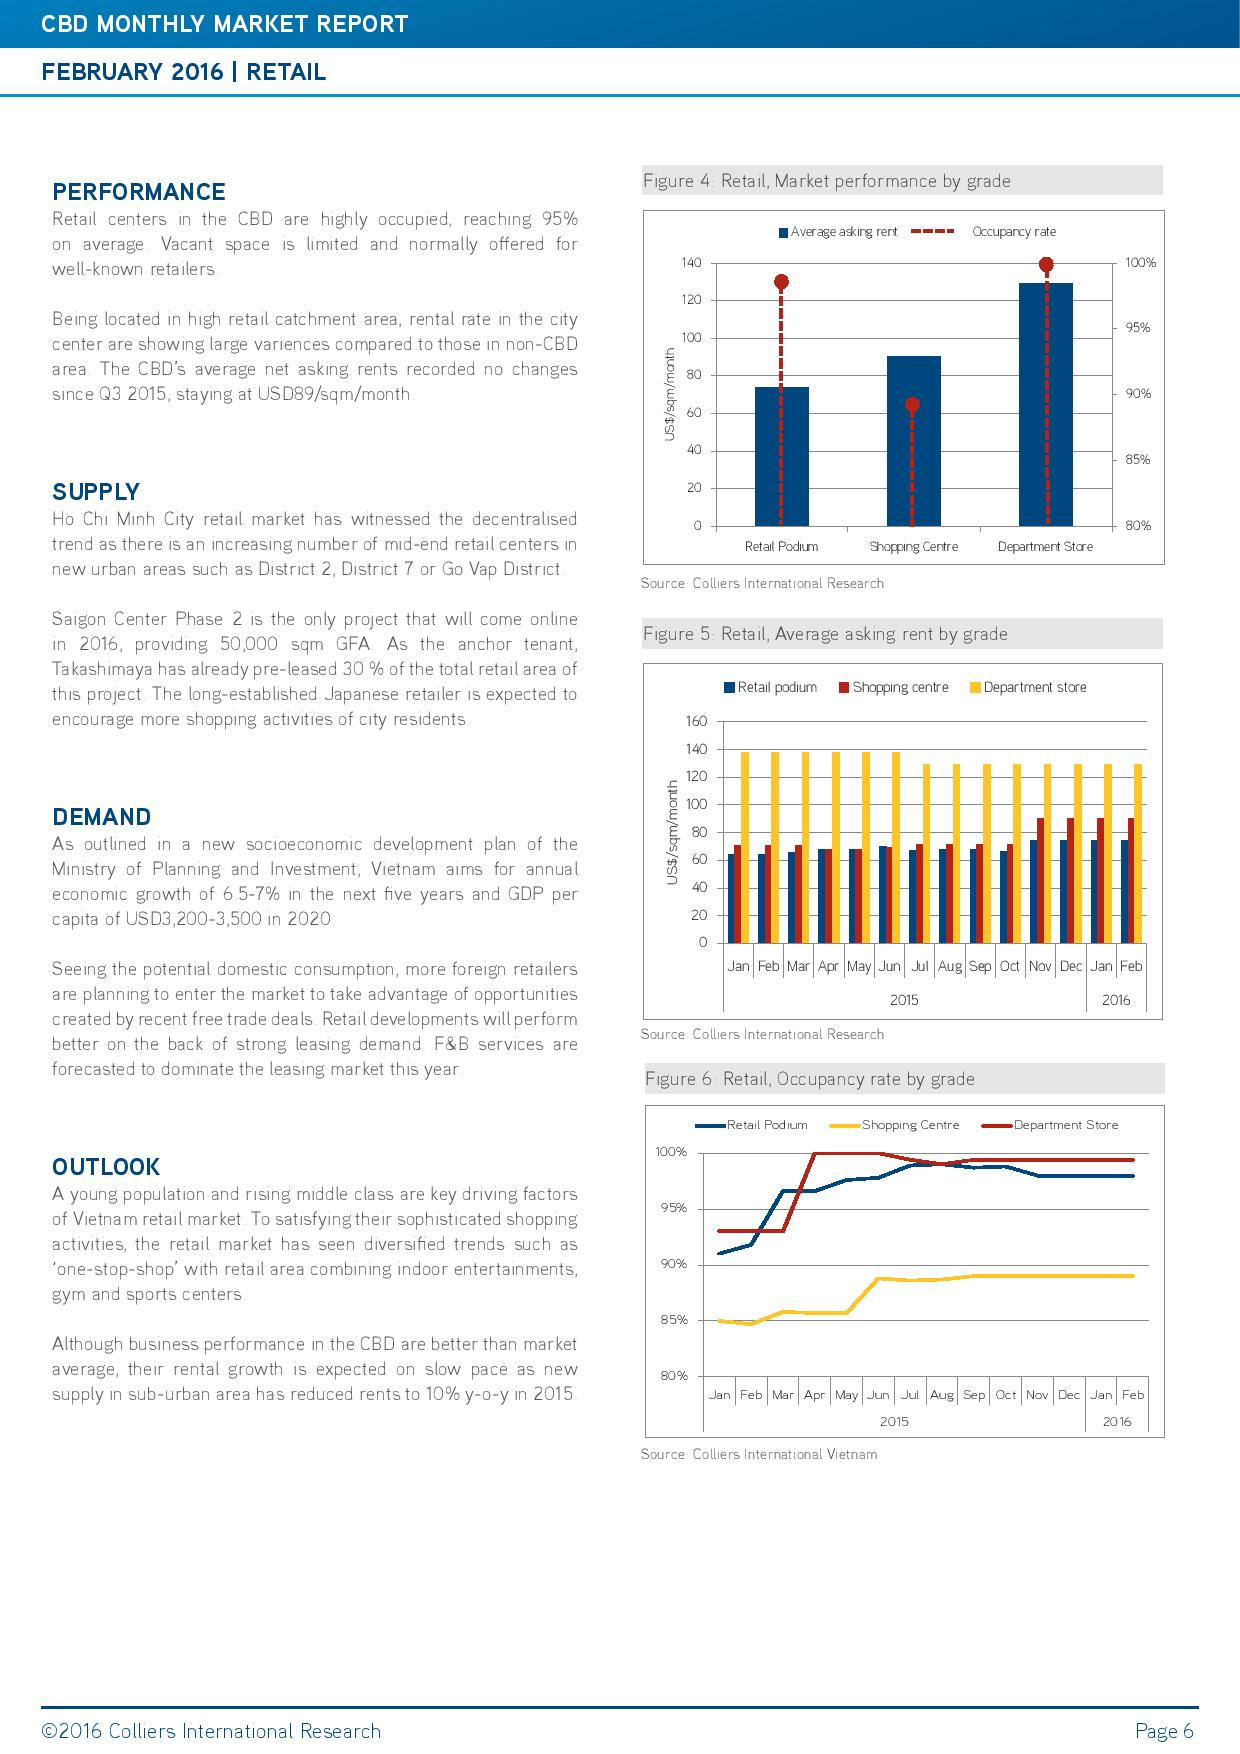 Colliers_HCMC_CBD report_Feb 2016_ENG-page-006